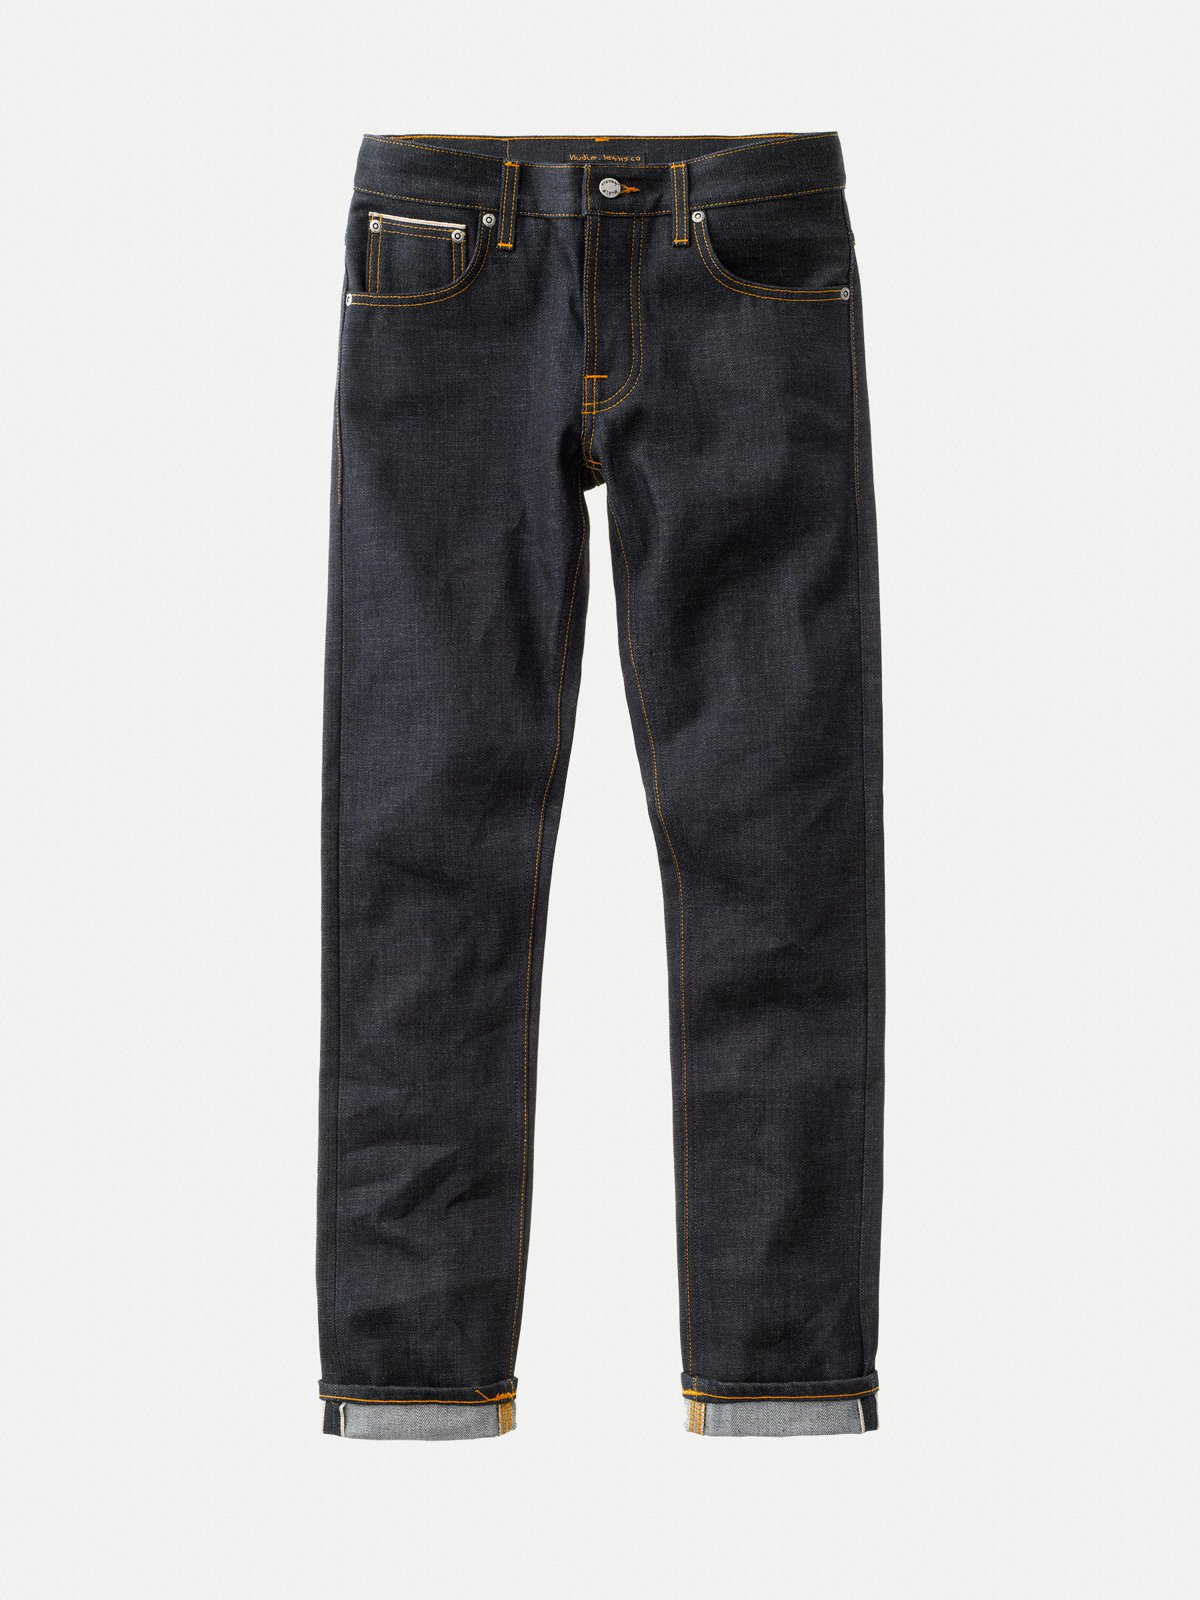 Nudie Jeans - Dry Selvage, sustainable cotton, a well-made pair of jeans that are made to be worn to the end of their useful life.